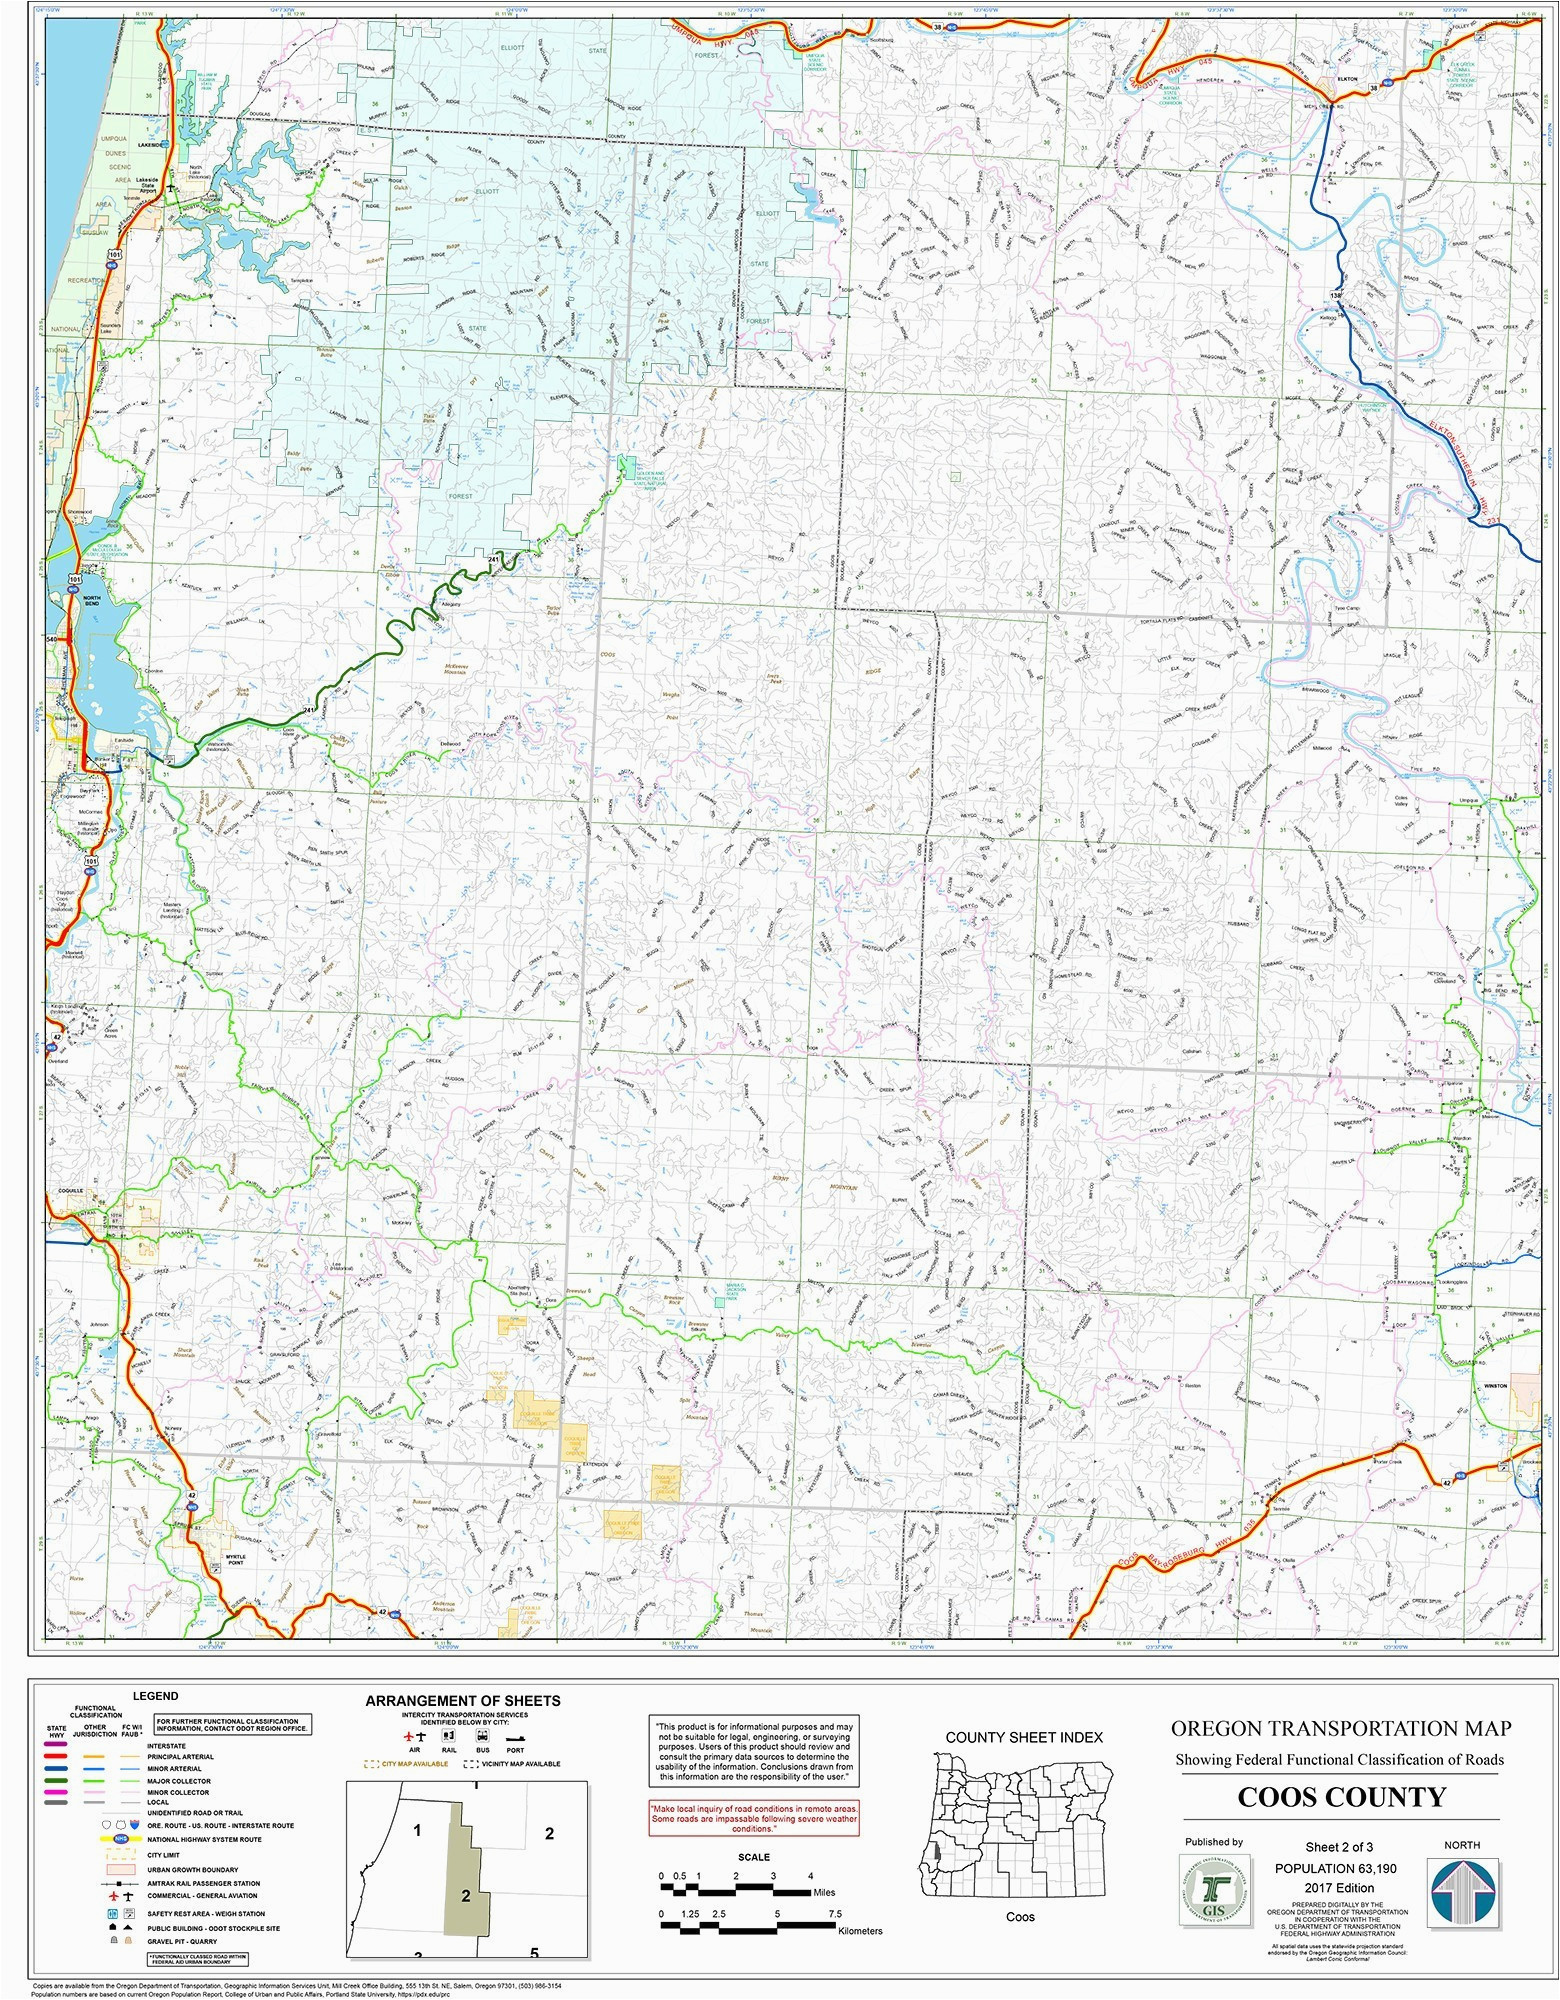 Colorado Driving Conditions Map Colorado State Map with Counties and Cities New United States Map